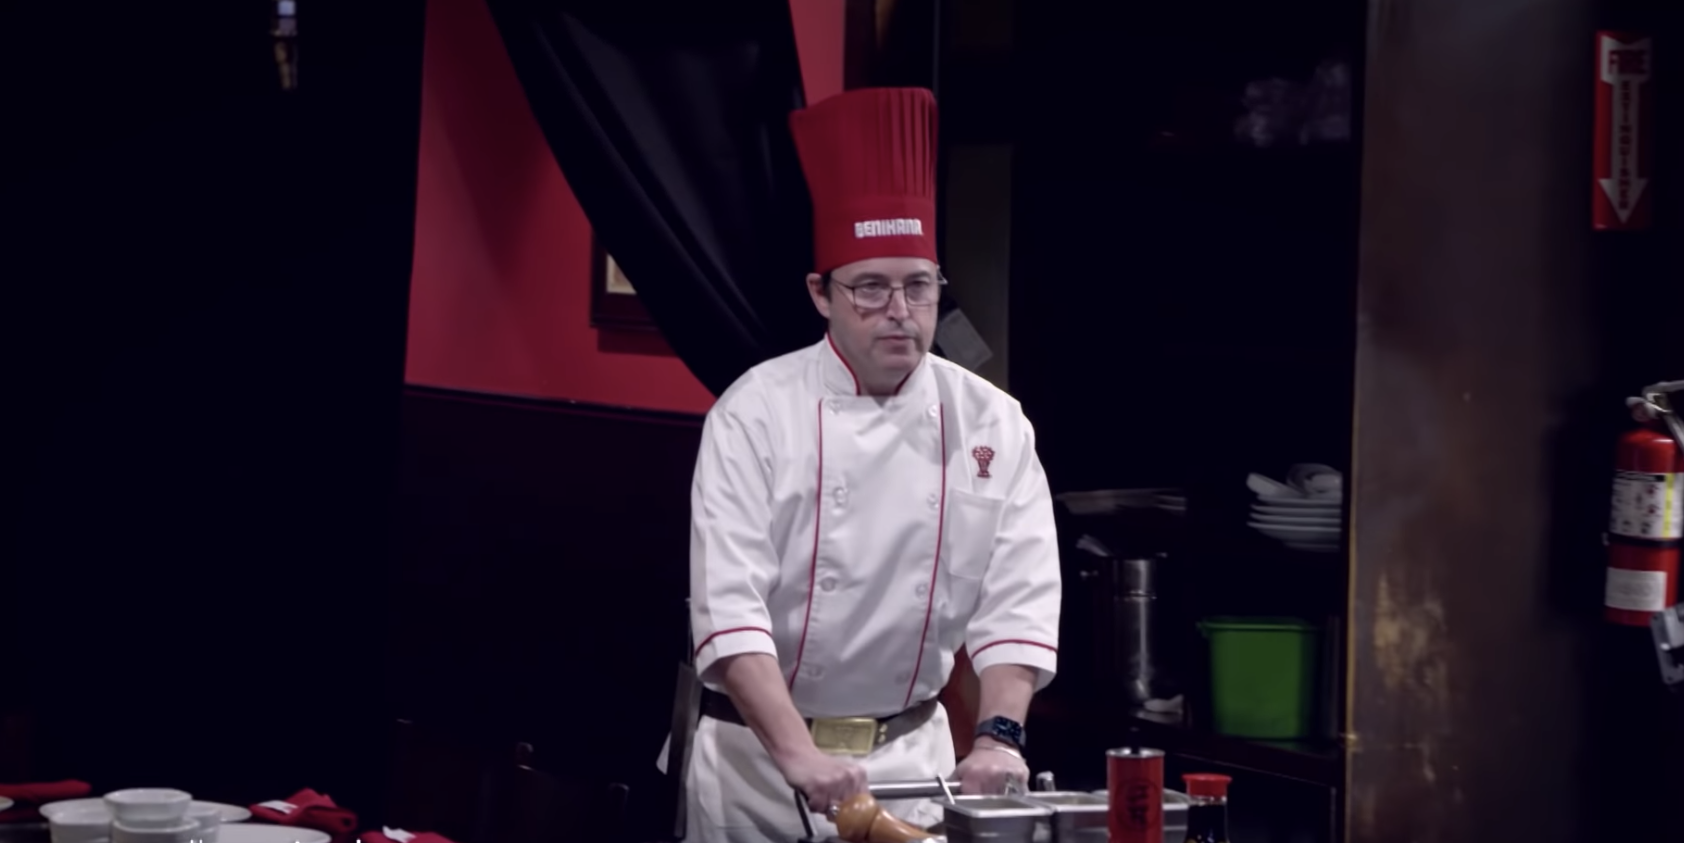 Ellen Degeneres Made Her Producer Andy Become A Hibachi Chef